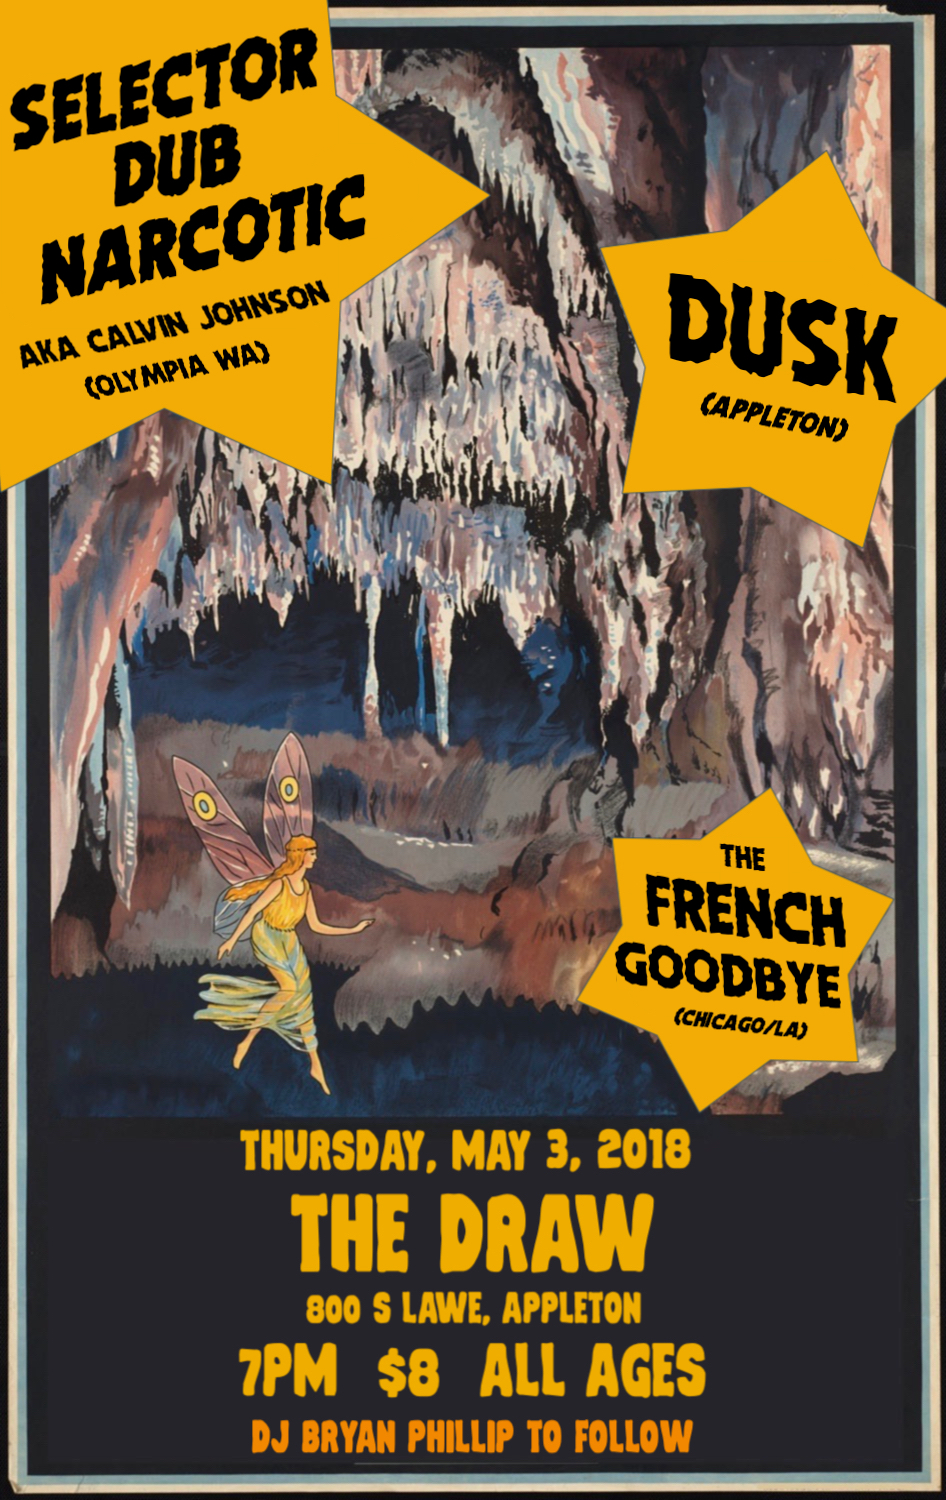 The French Goodbye VROOM! World Tour is ONE NIGHT ONLY at The Draw in Appleton, Wisconsin